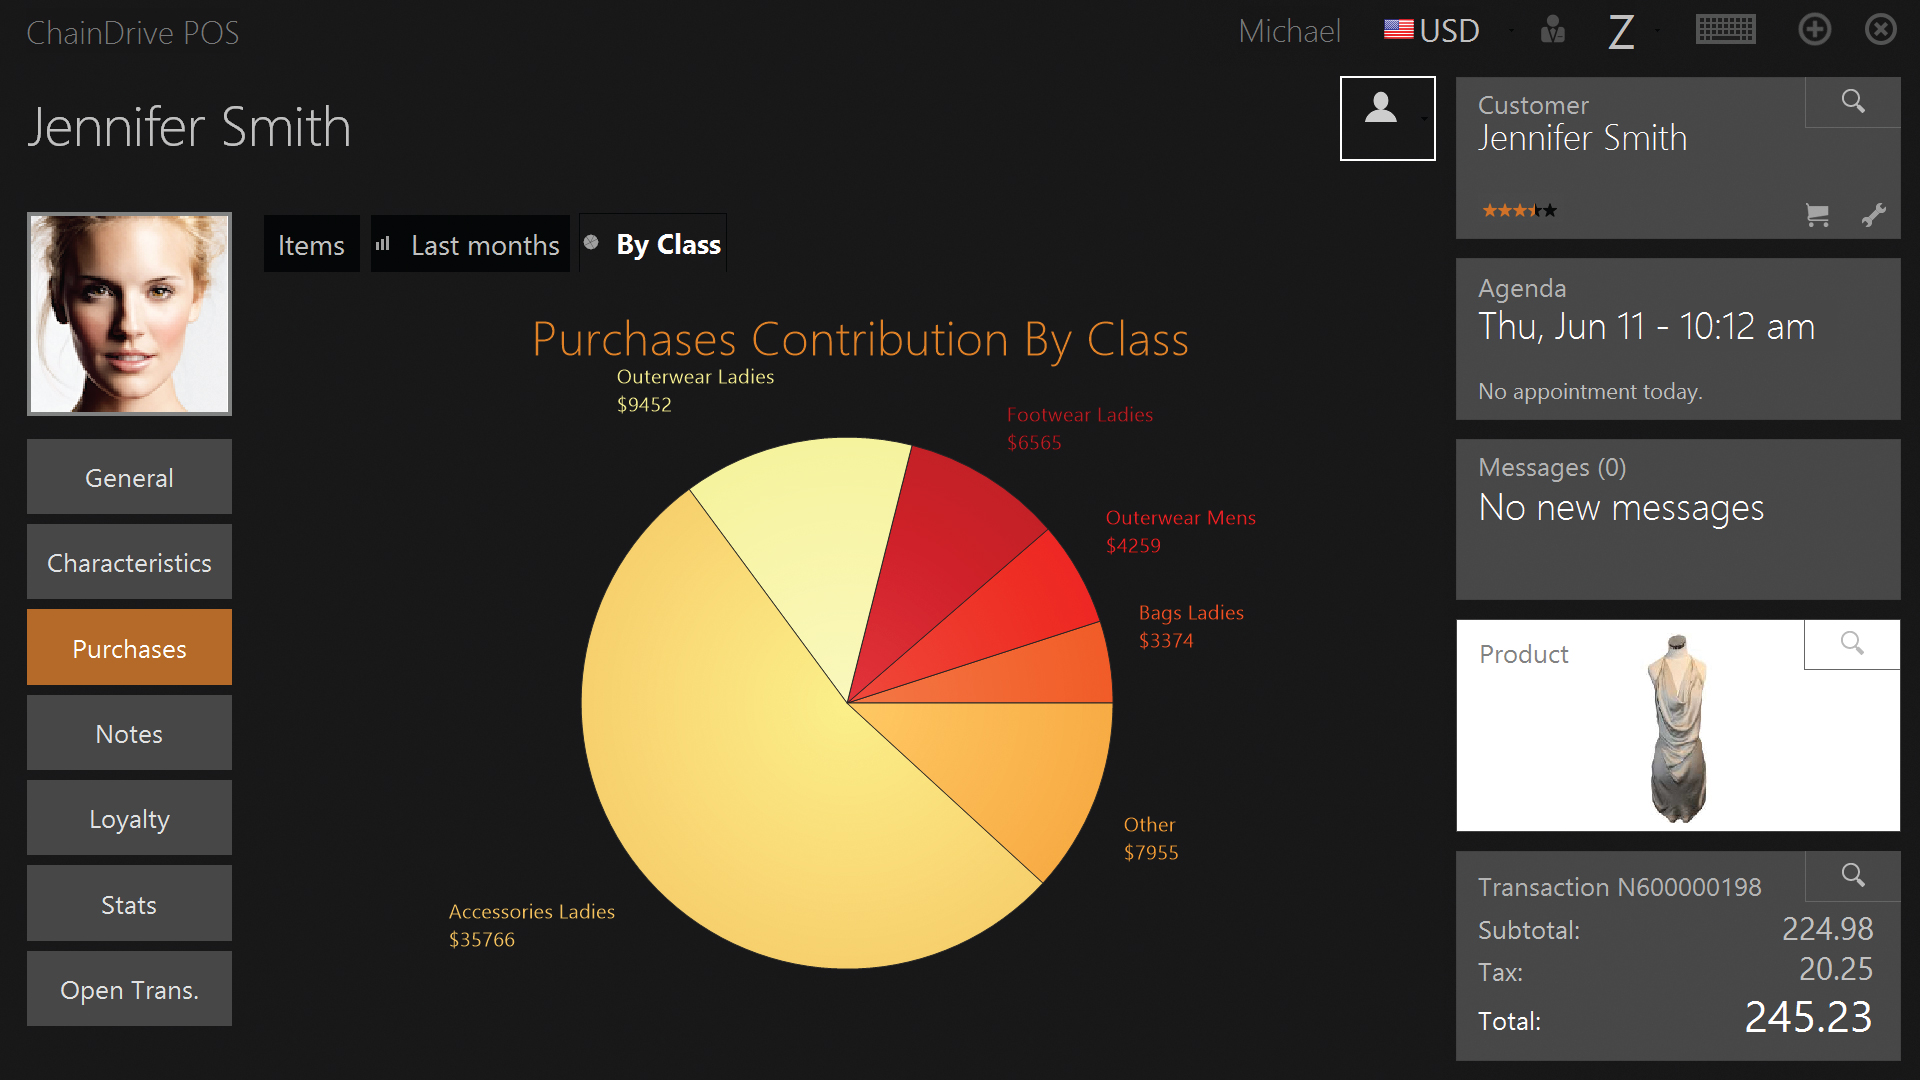 Purchases Contribution by Class